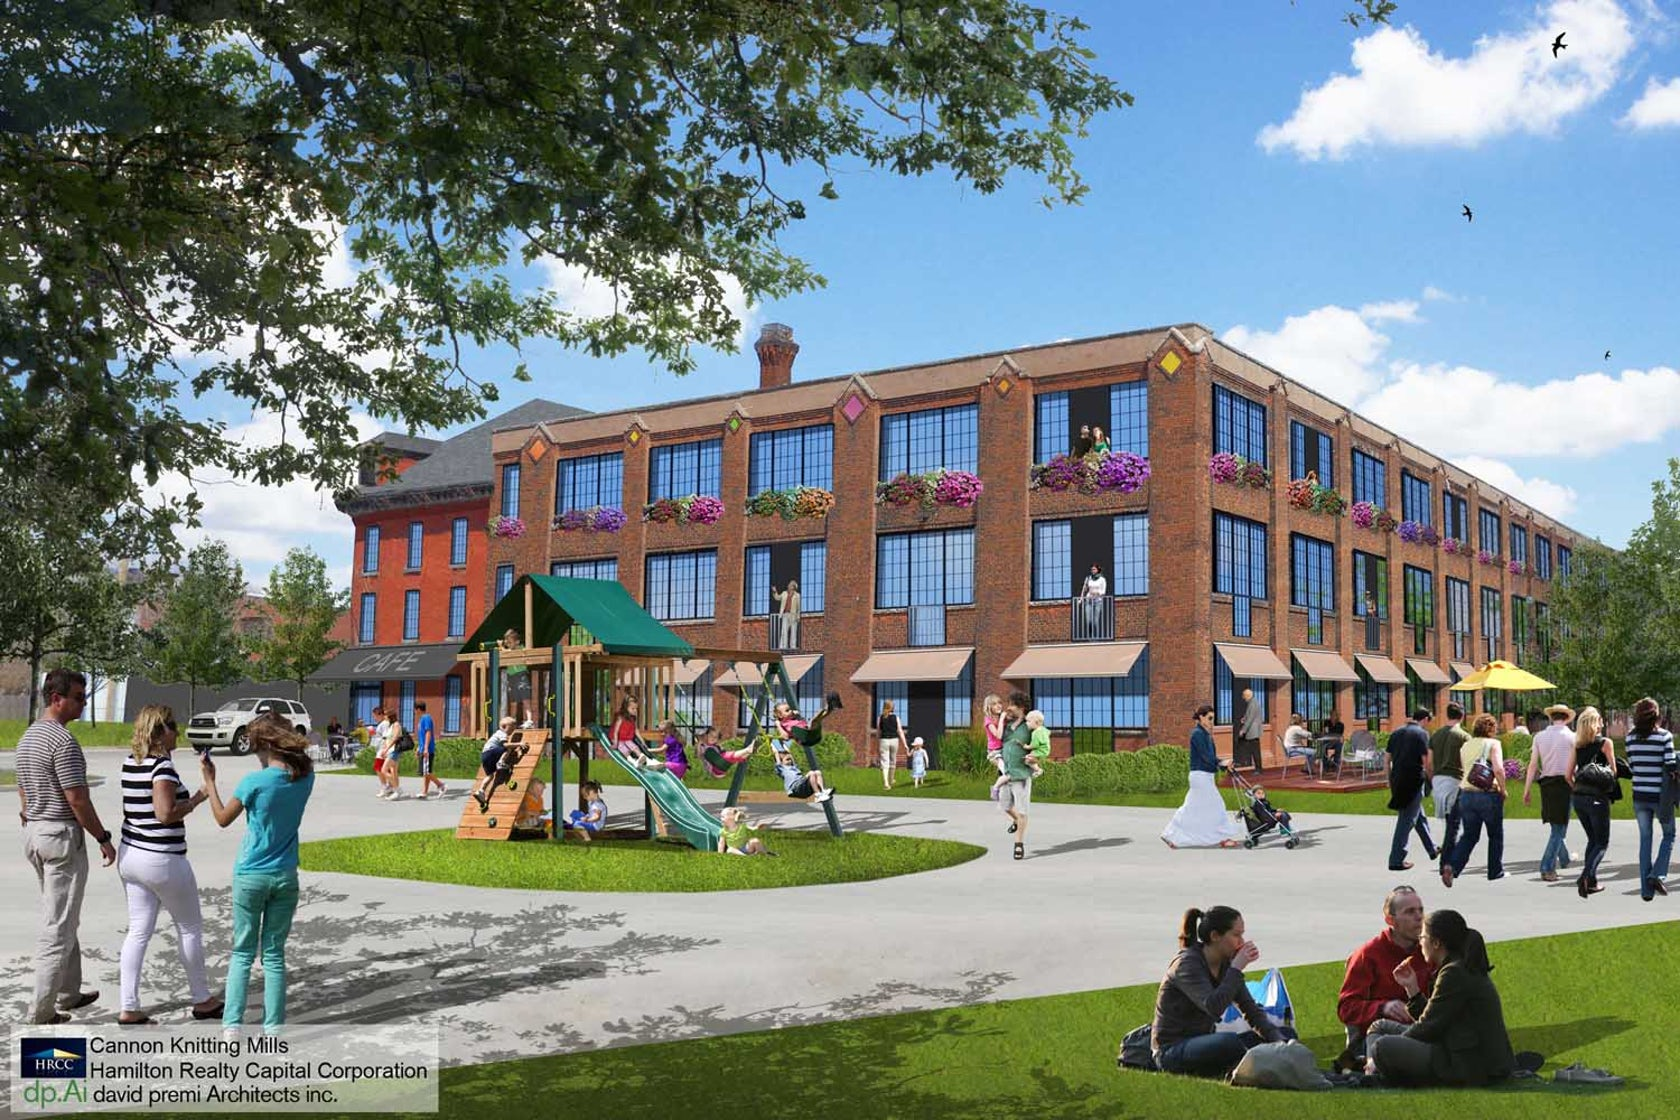 Cannon Knitting Mills Hamilton : Cannon knitting mills a new vision for urban life in